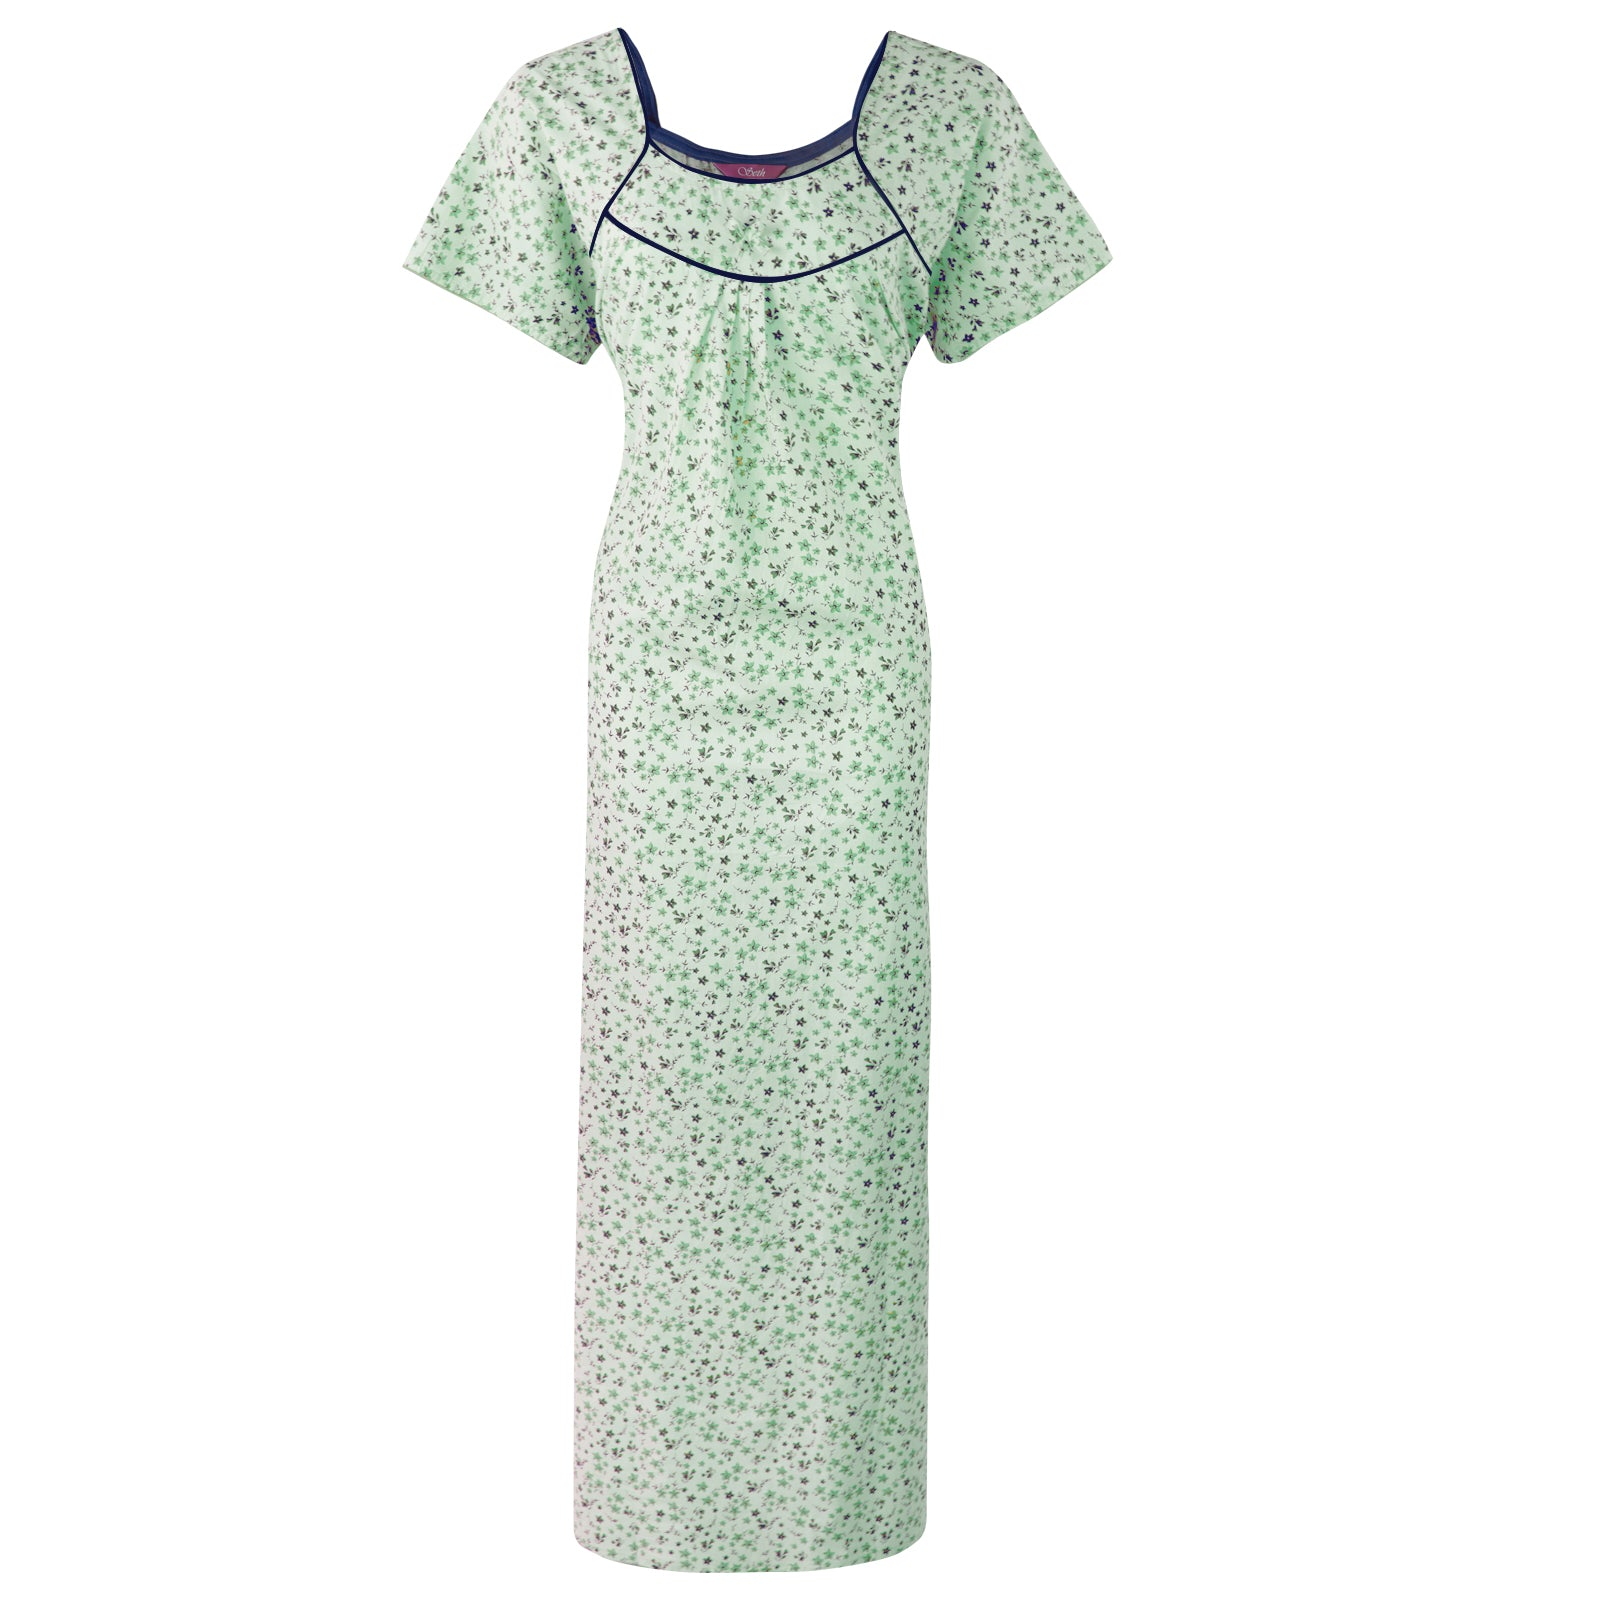 Plus Size 100% Cotton Nighty [colour]- Hautie UK, Size 22,24,26 GREEN